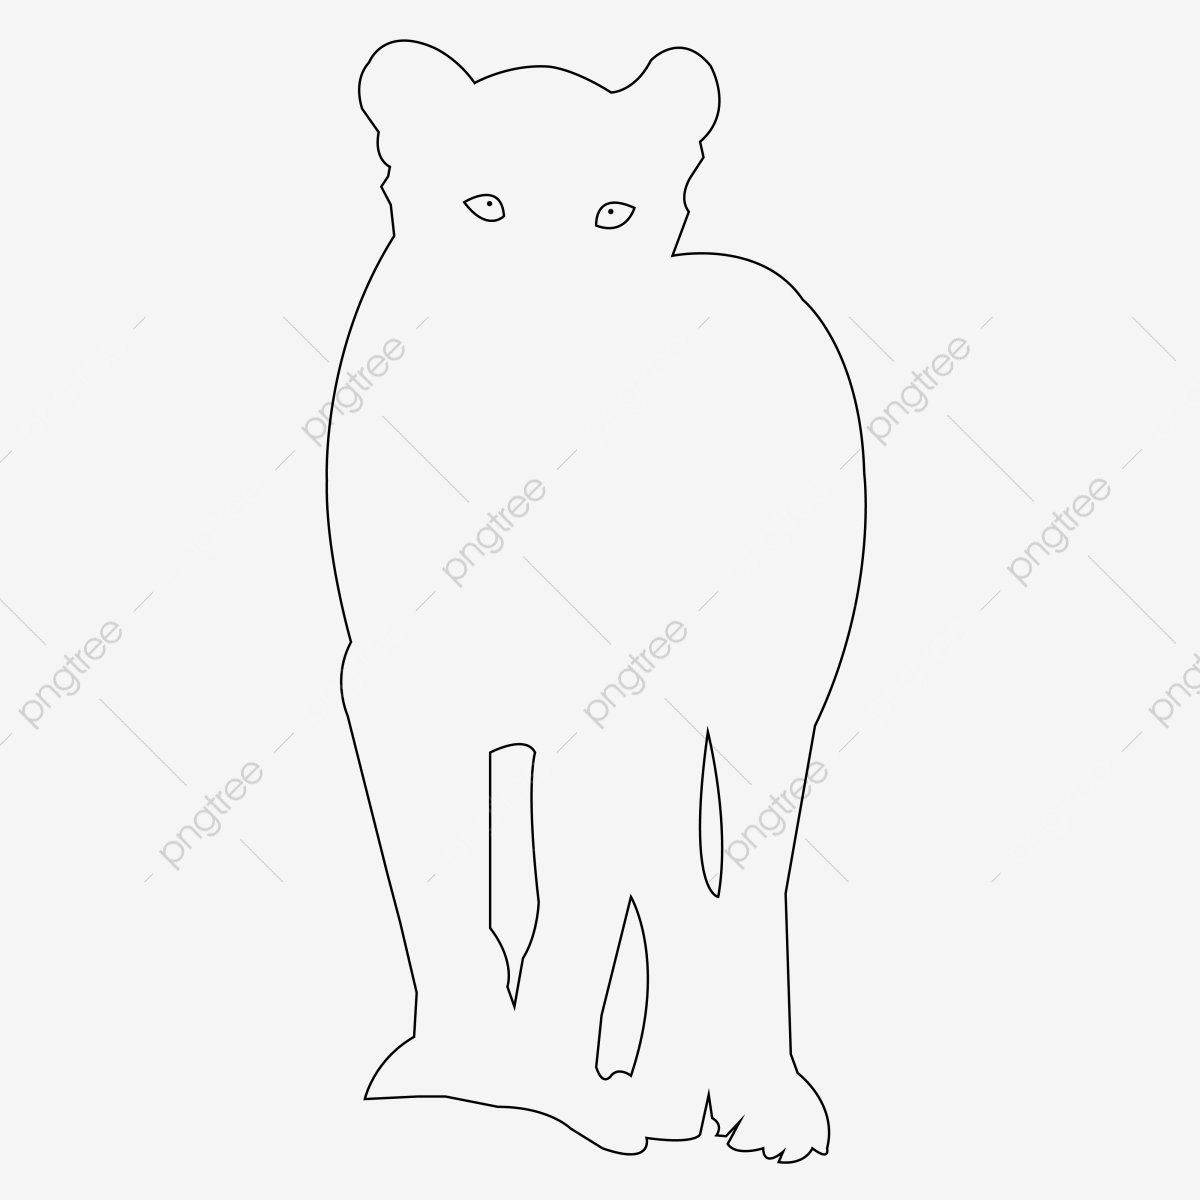 Lion Outline Png Vector Psd And Clipart With Transparent Background For Free Download Pngtree Vector lion one line draw illustration. https pngtree com freepng lion outline vector icon set 4005087 html